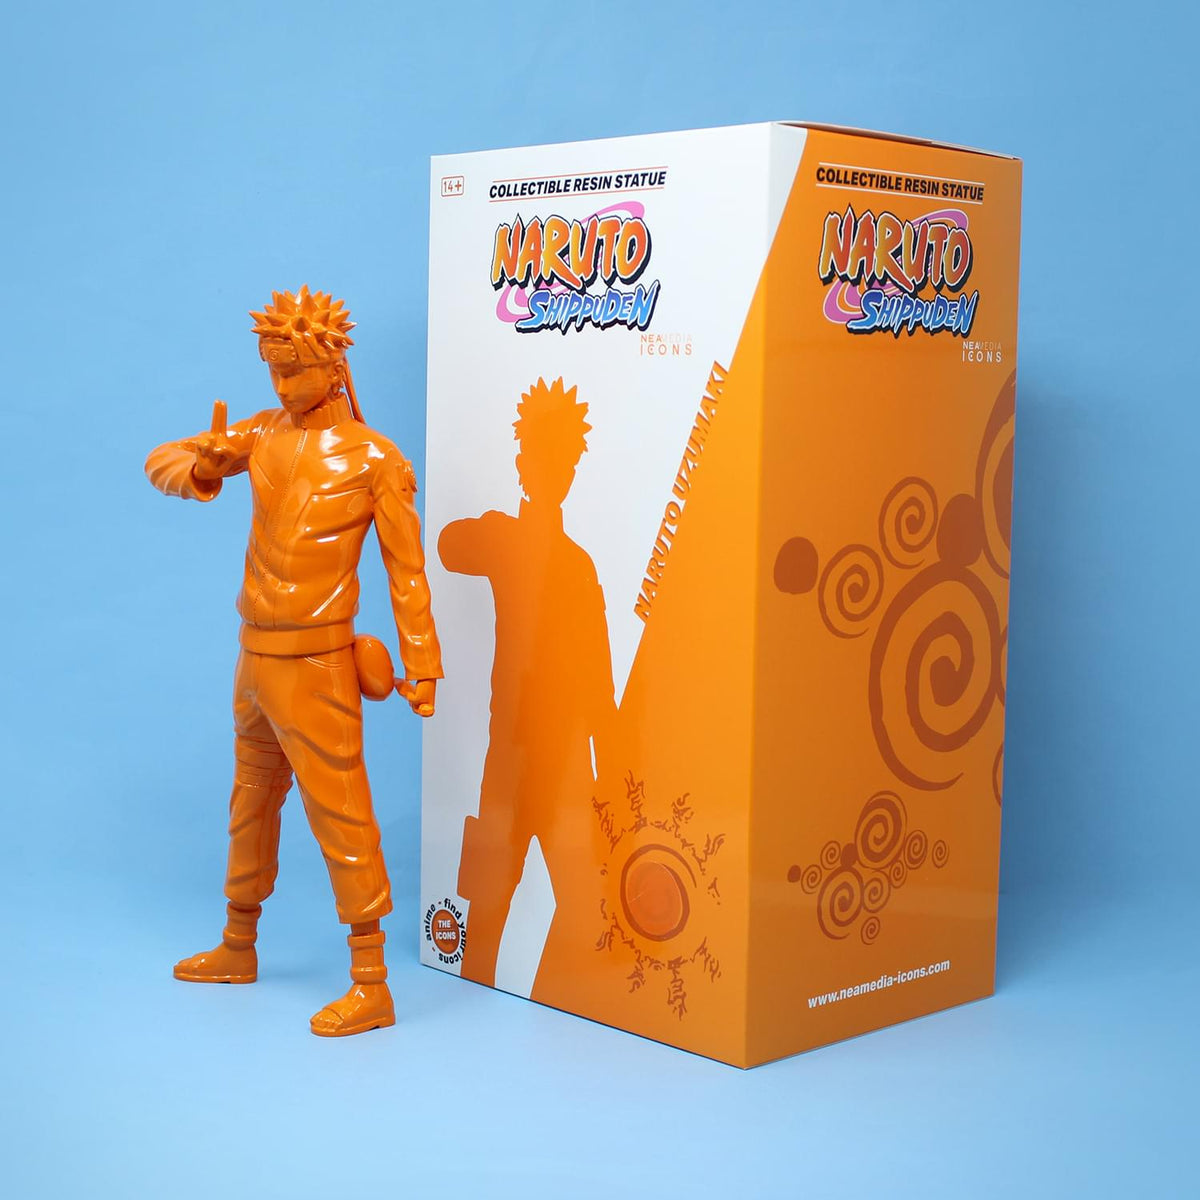 Naruto Icons 11.8 Inch Resin Figure | Orange